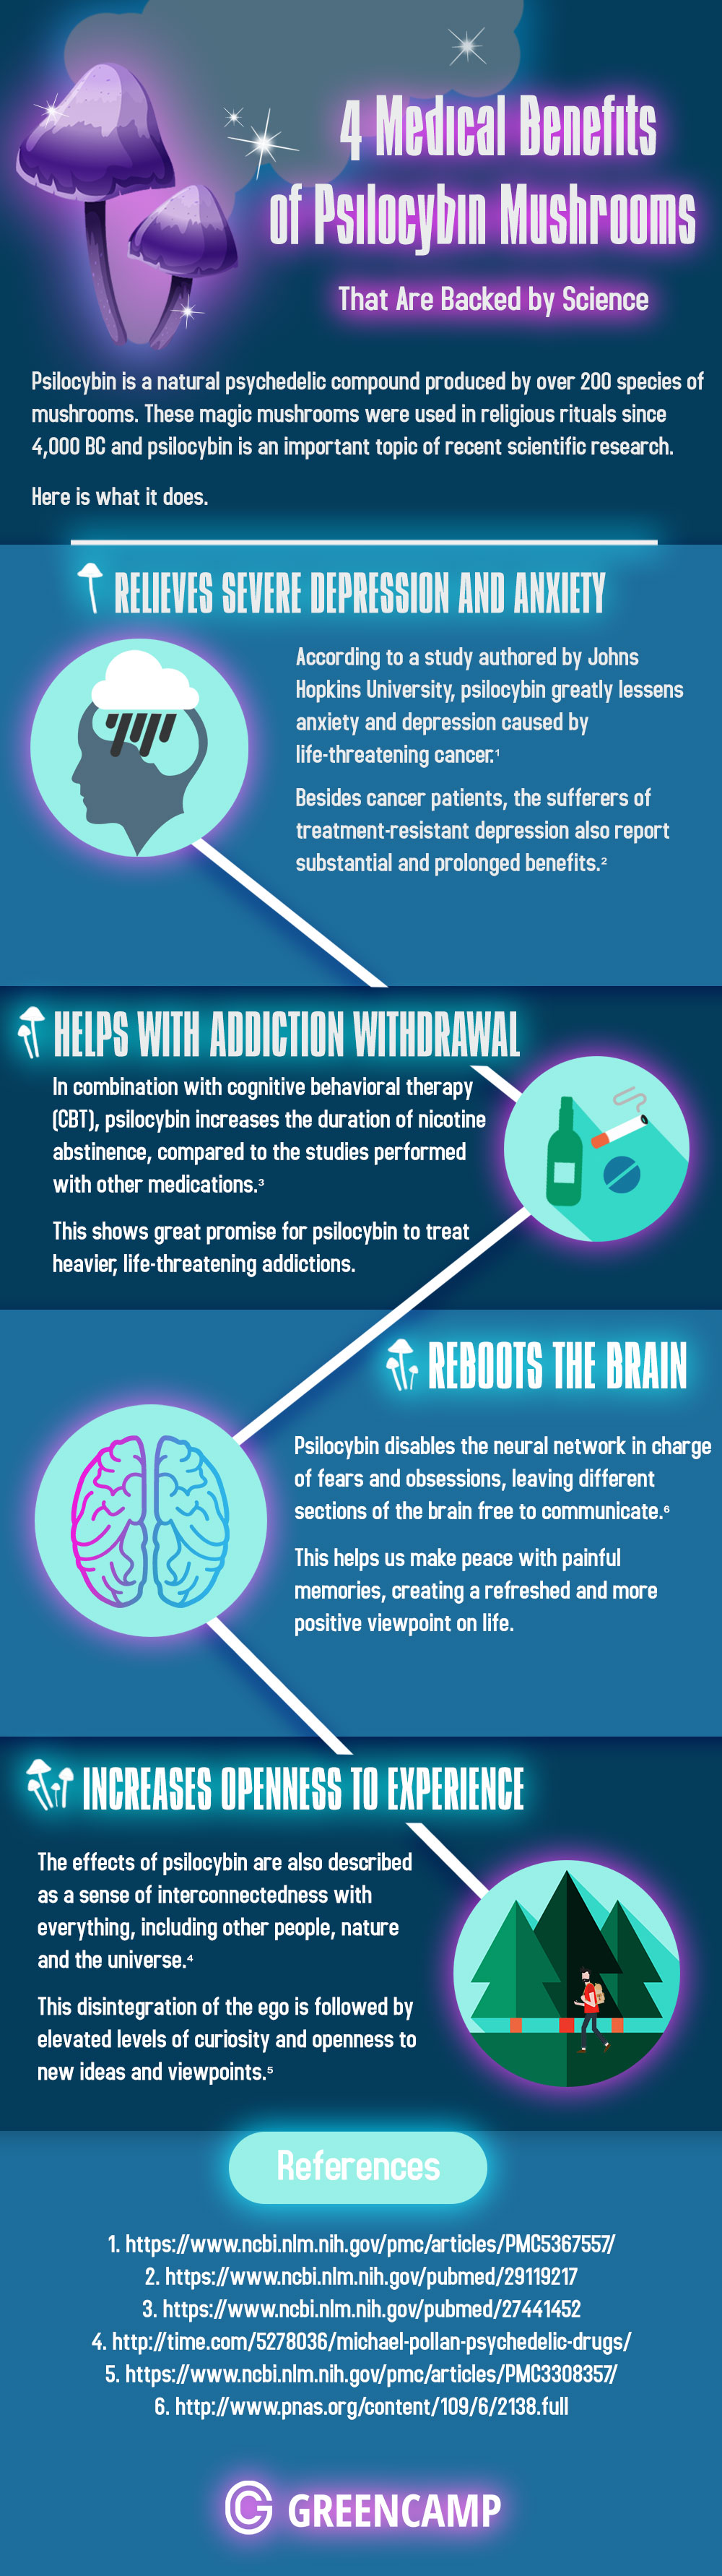 Psilocybin-mushrooms-medical-benefits-infographic-plaza